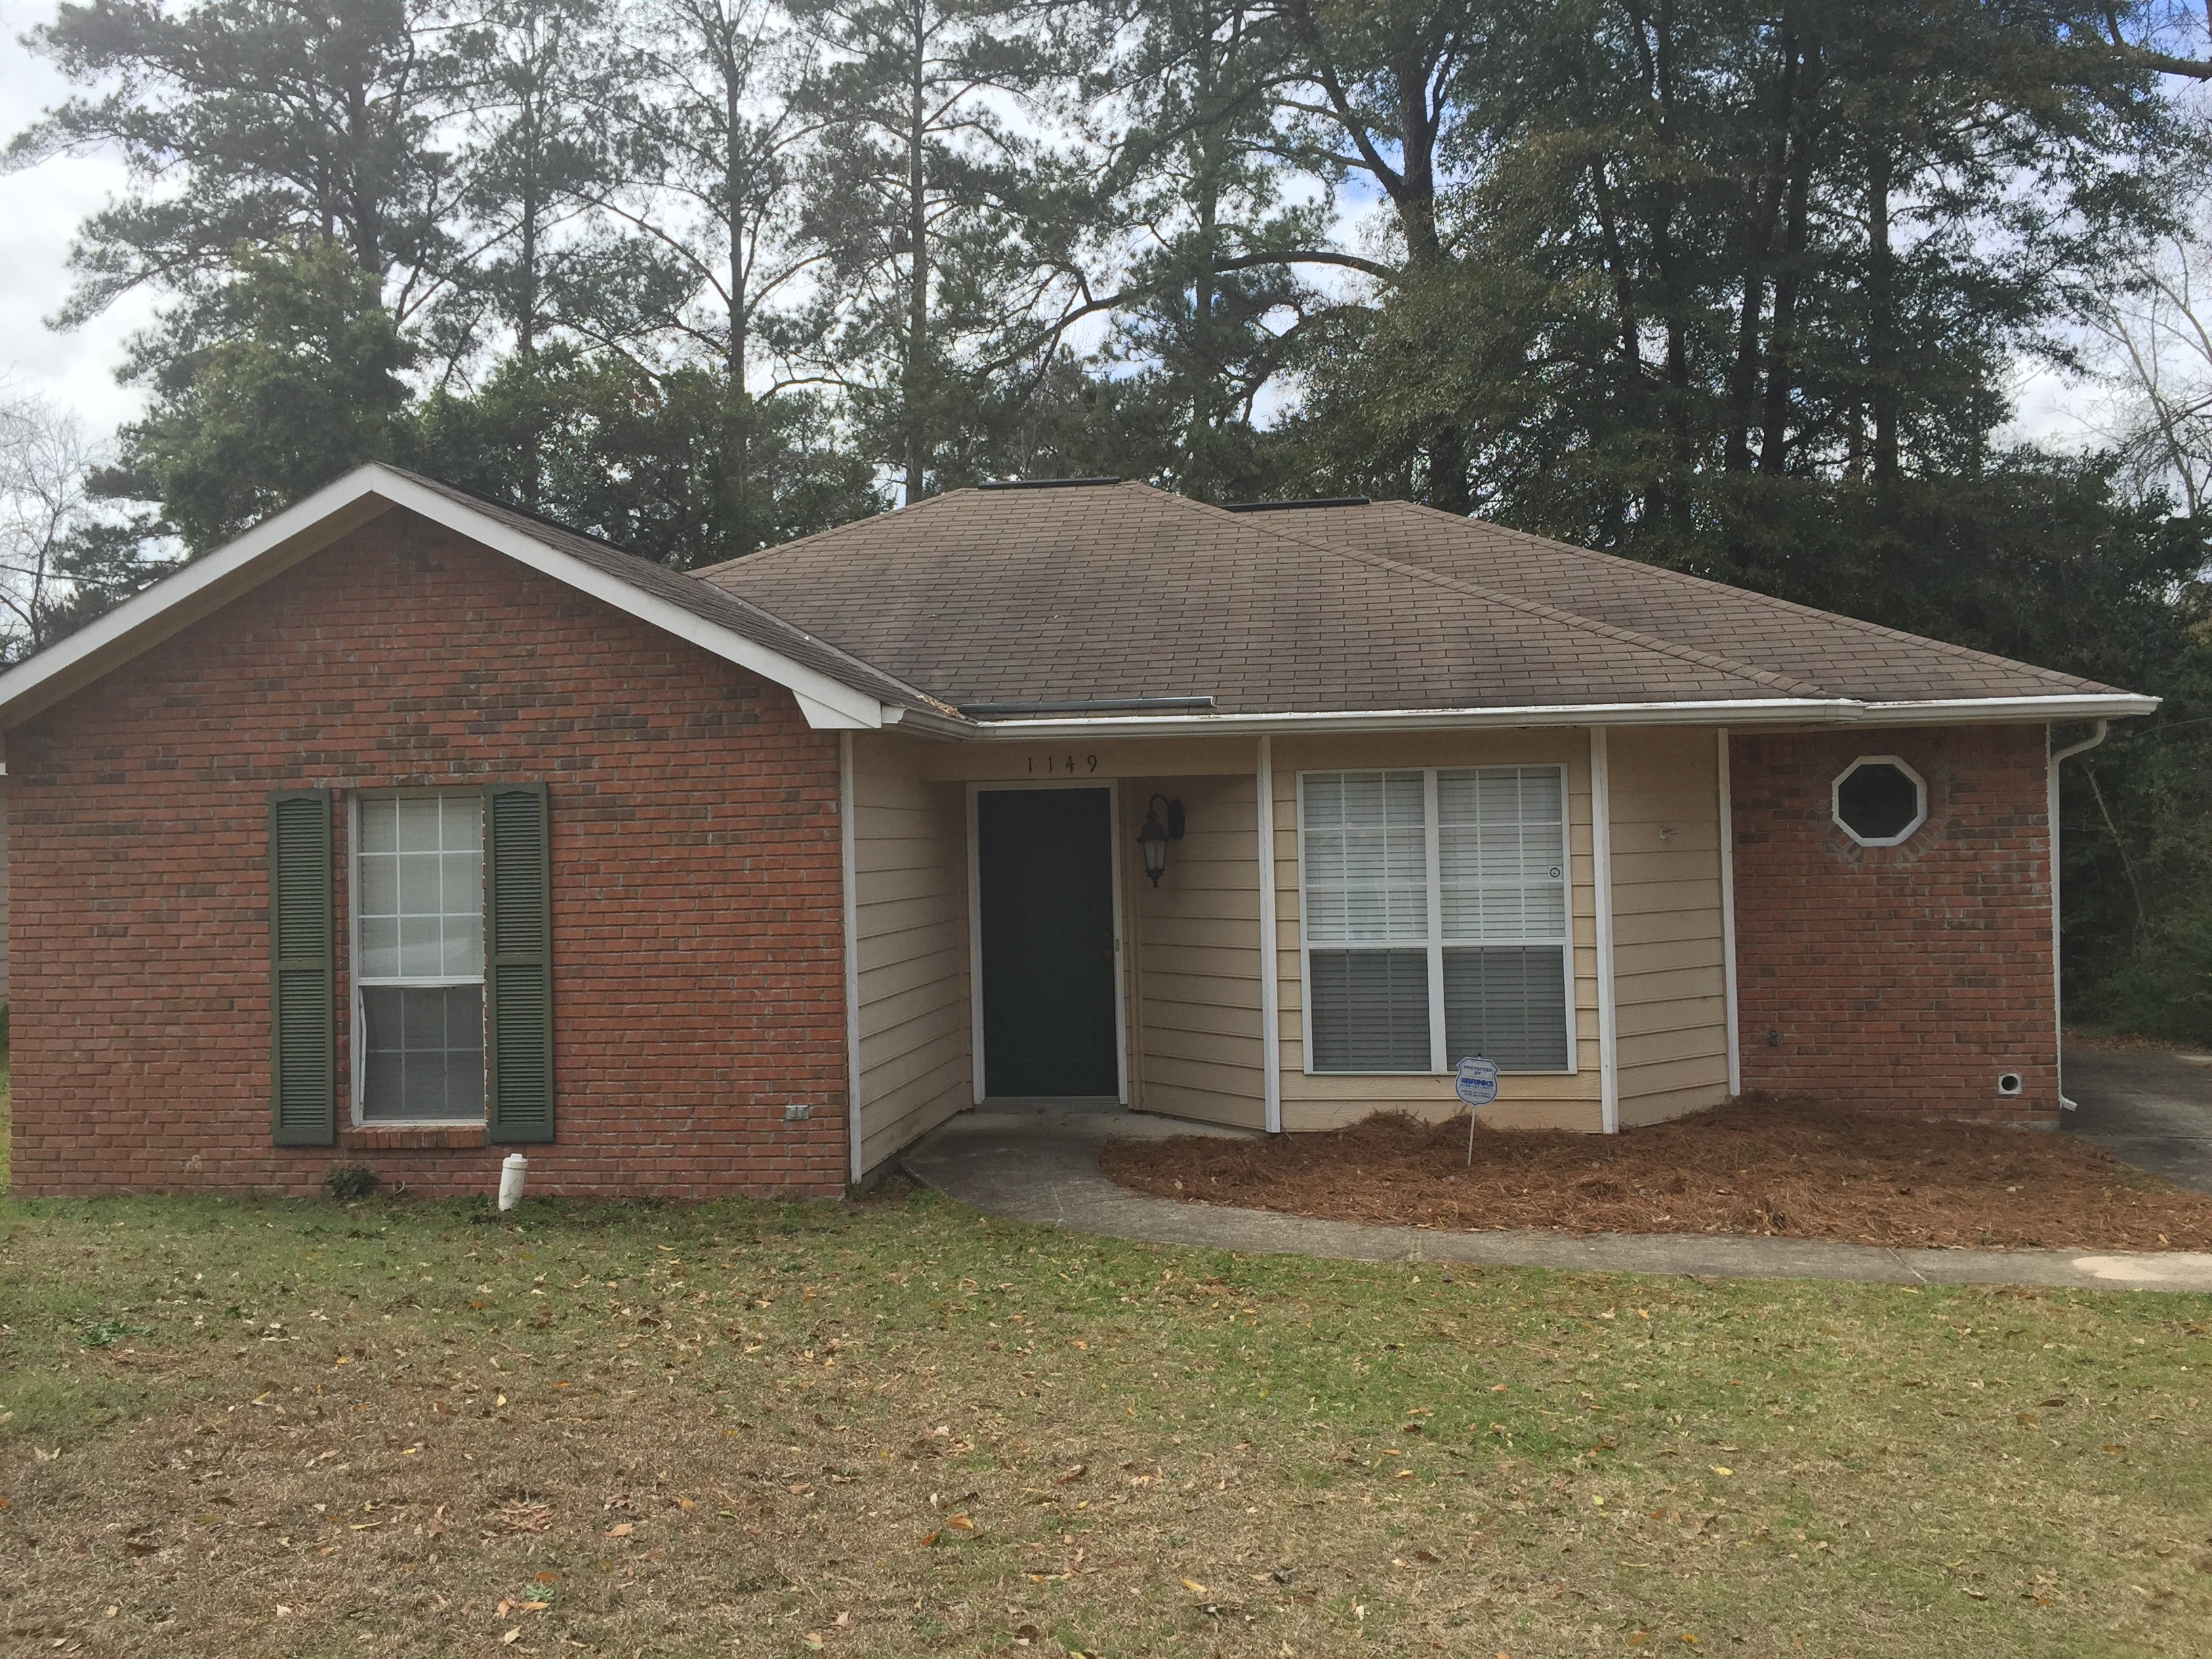 1149 bismark dr columbus ga 31907 3 bedroom apartment for rent for